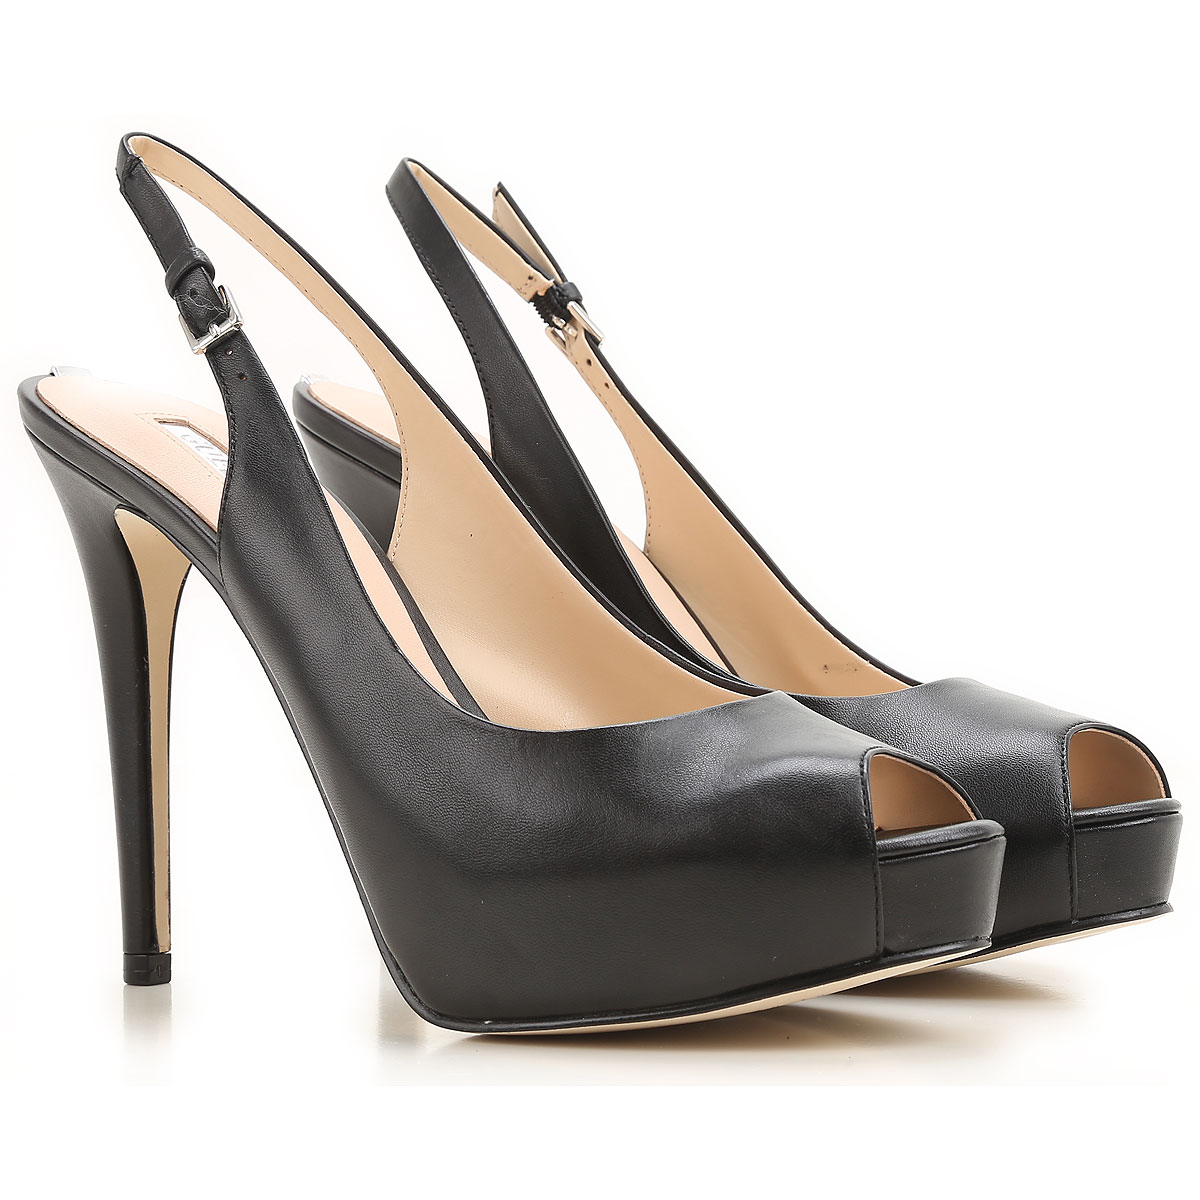 Shop women's heels, sandals, wedges, boots and booties, flats and more. Free shipping and in-store returns.